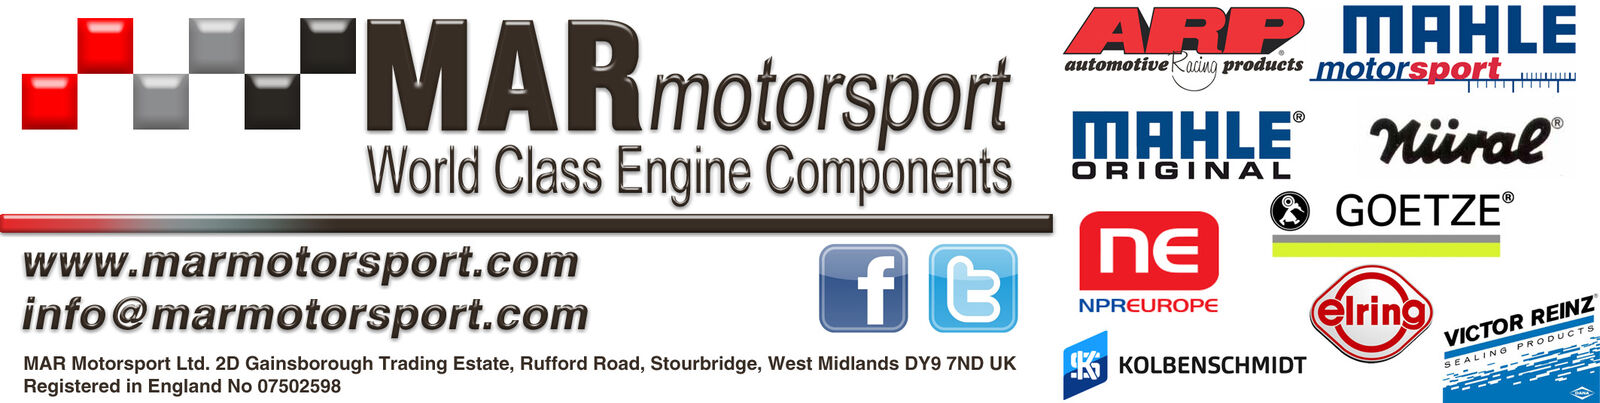 MAR motorsport Ltd